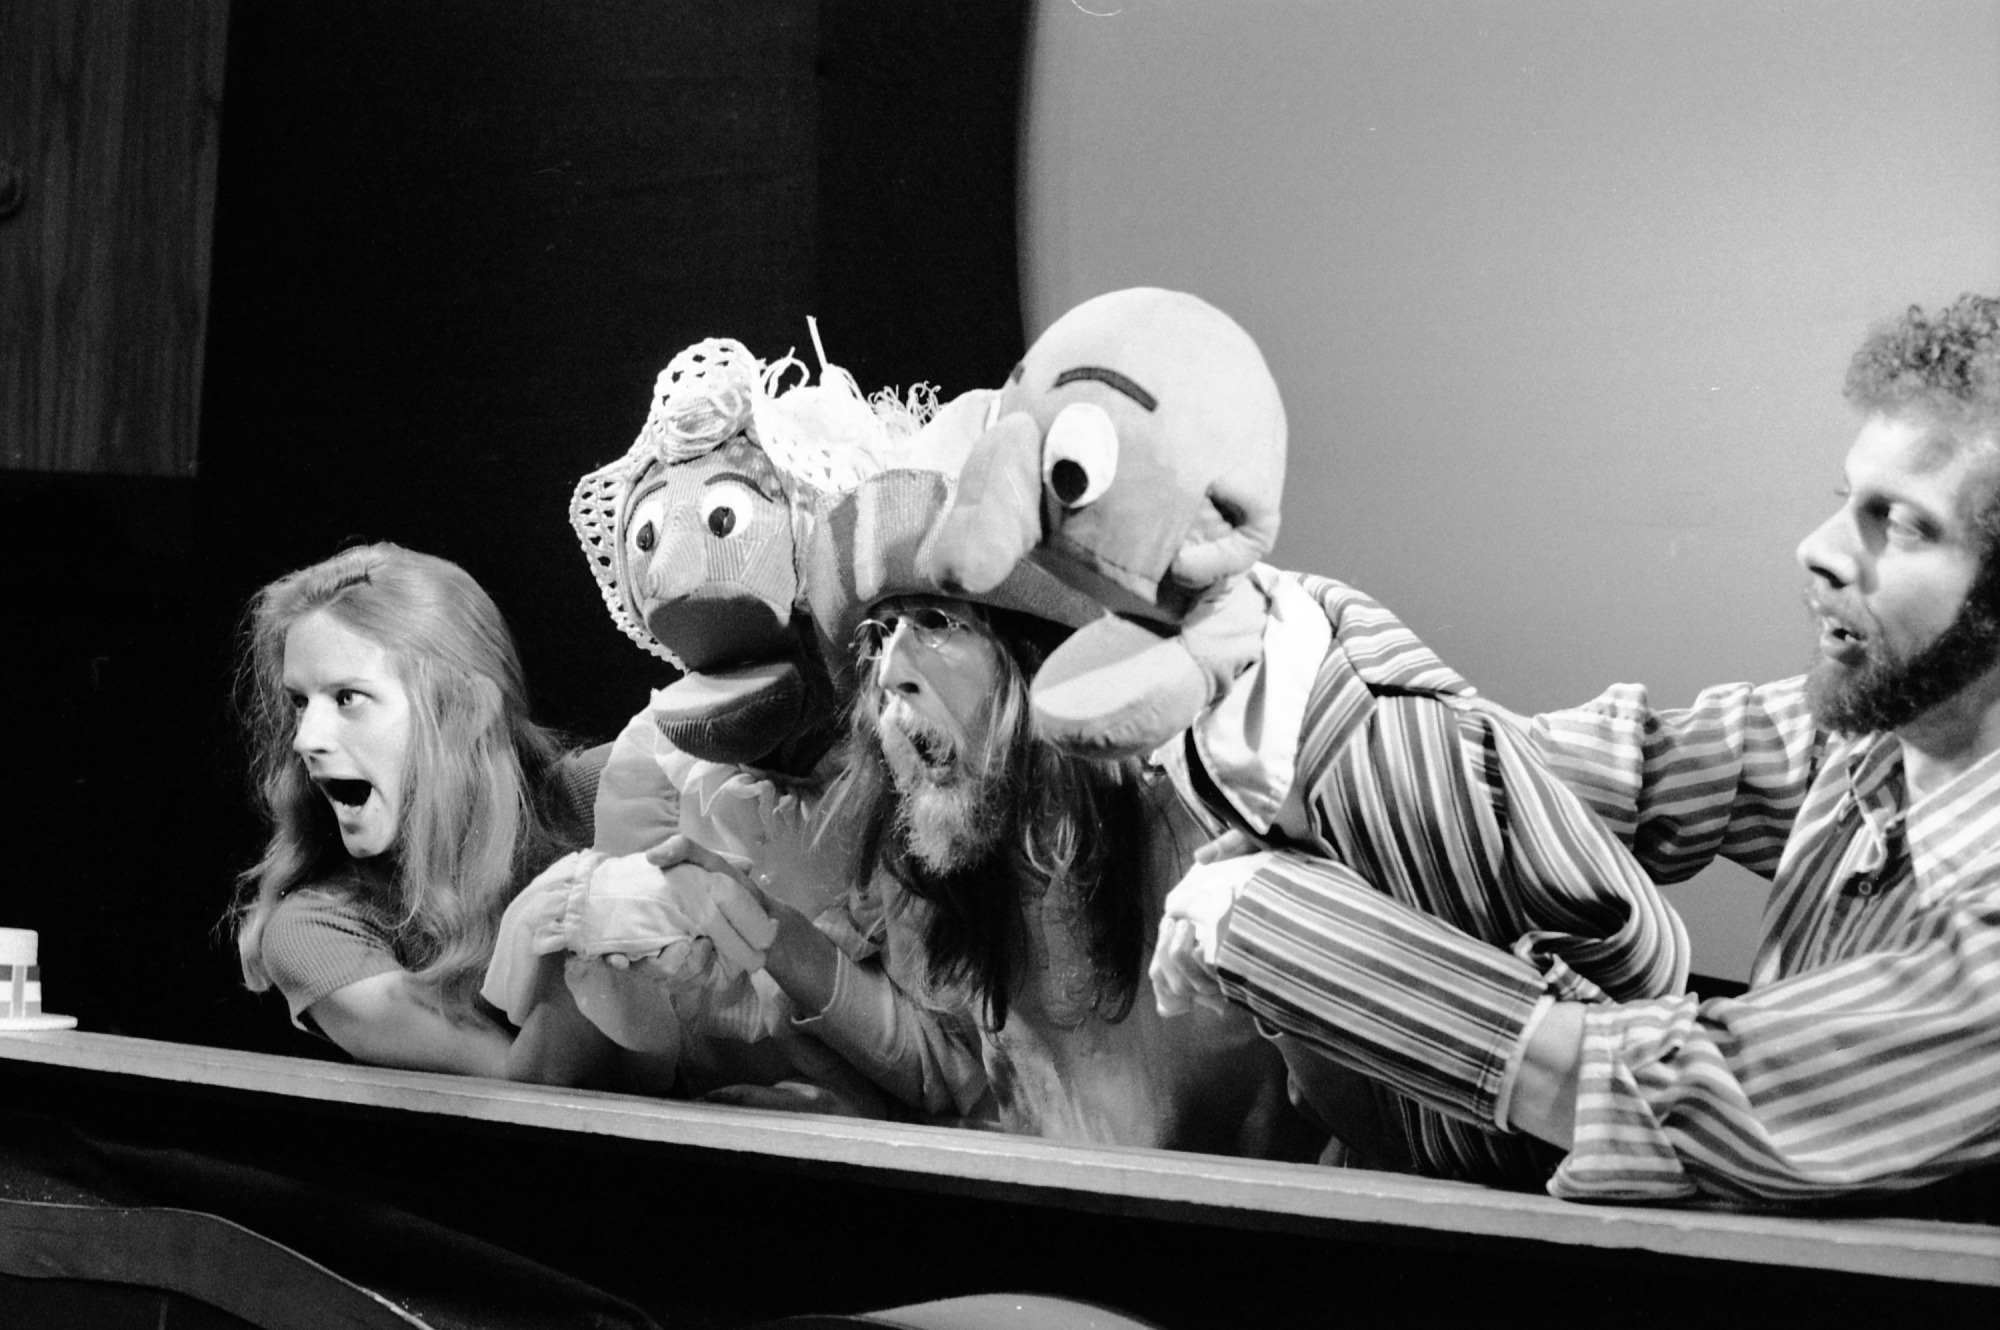 Puppet Theater, 1972, Smithsonian Institution Archives, SIA Acc. 11-009 [72-8376-34].